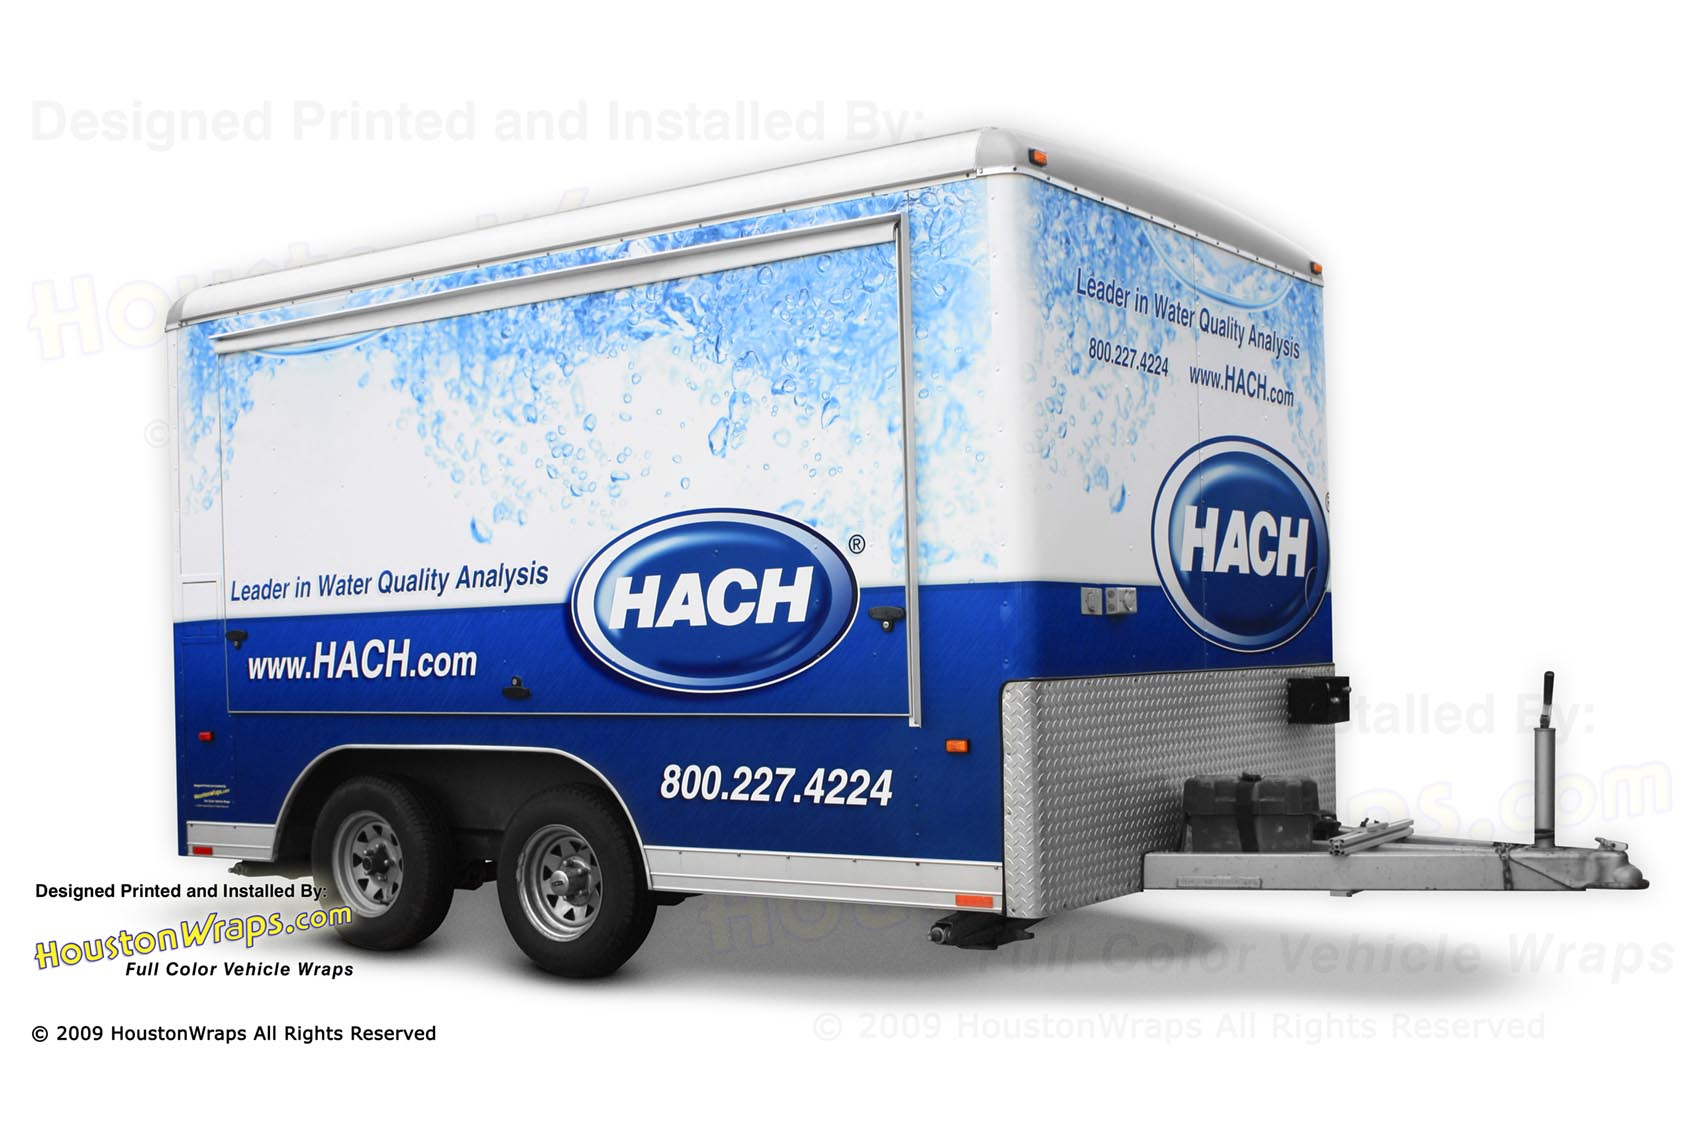 Houston Wraps - HACH - Trailer Wrap